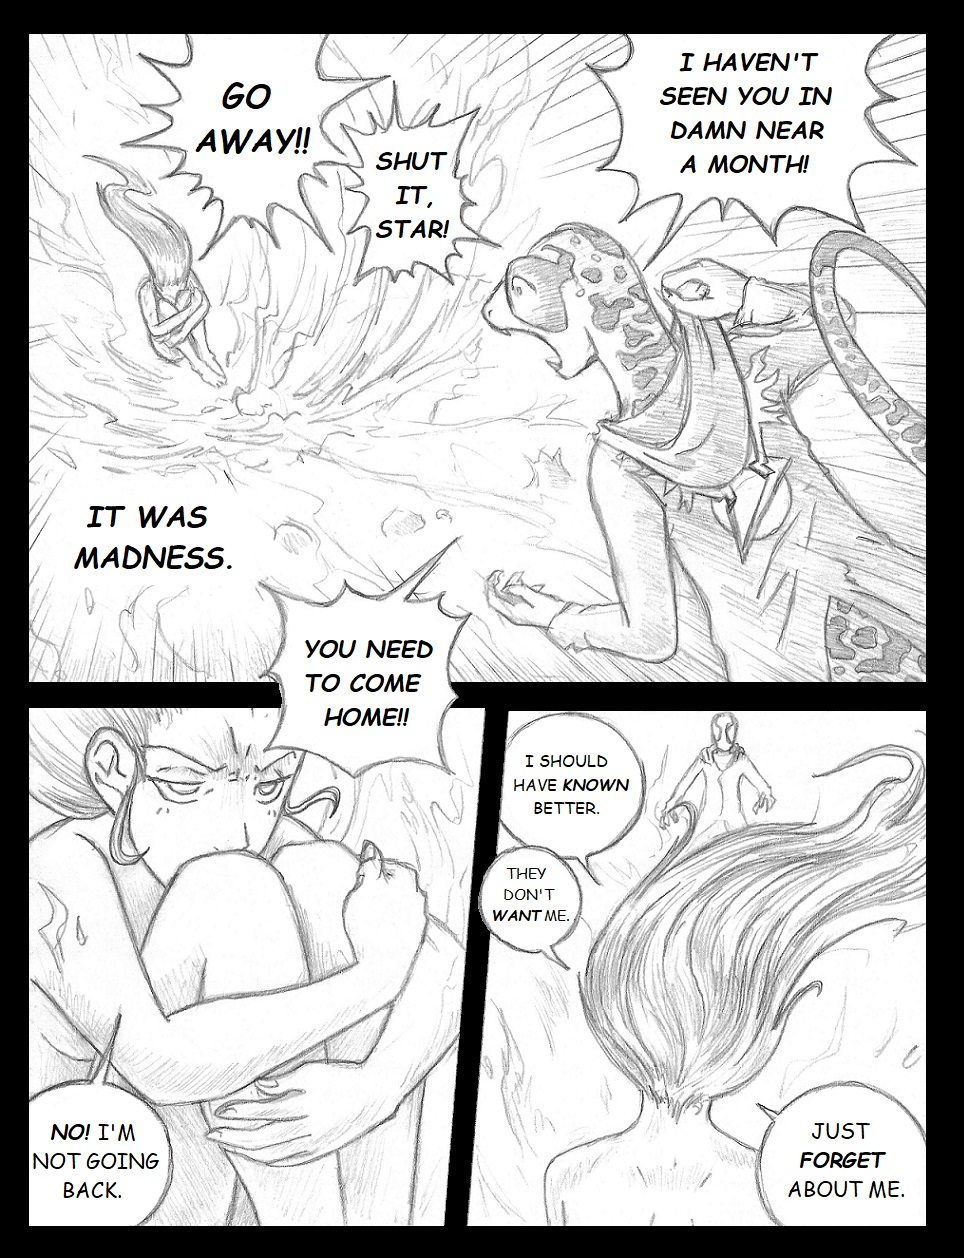 Section 13 page 159